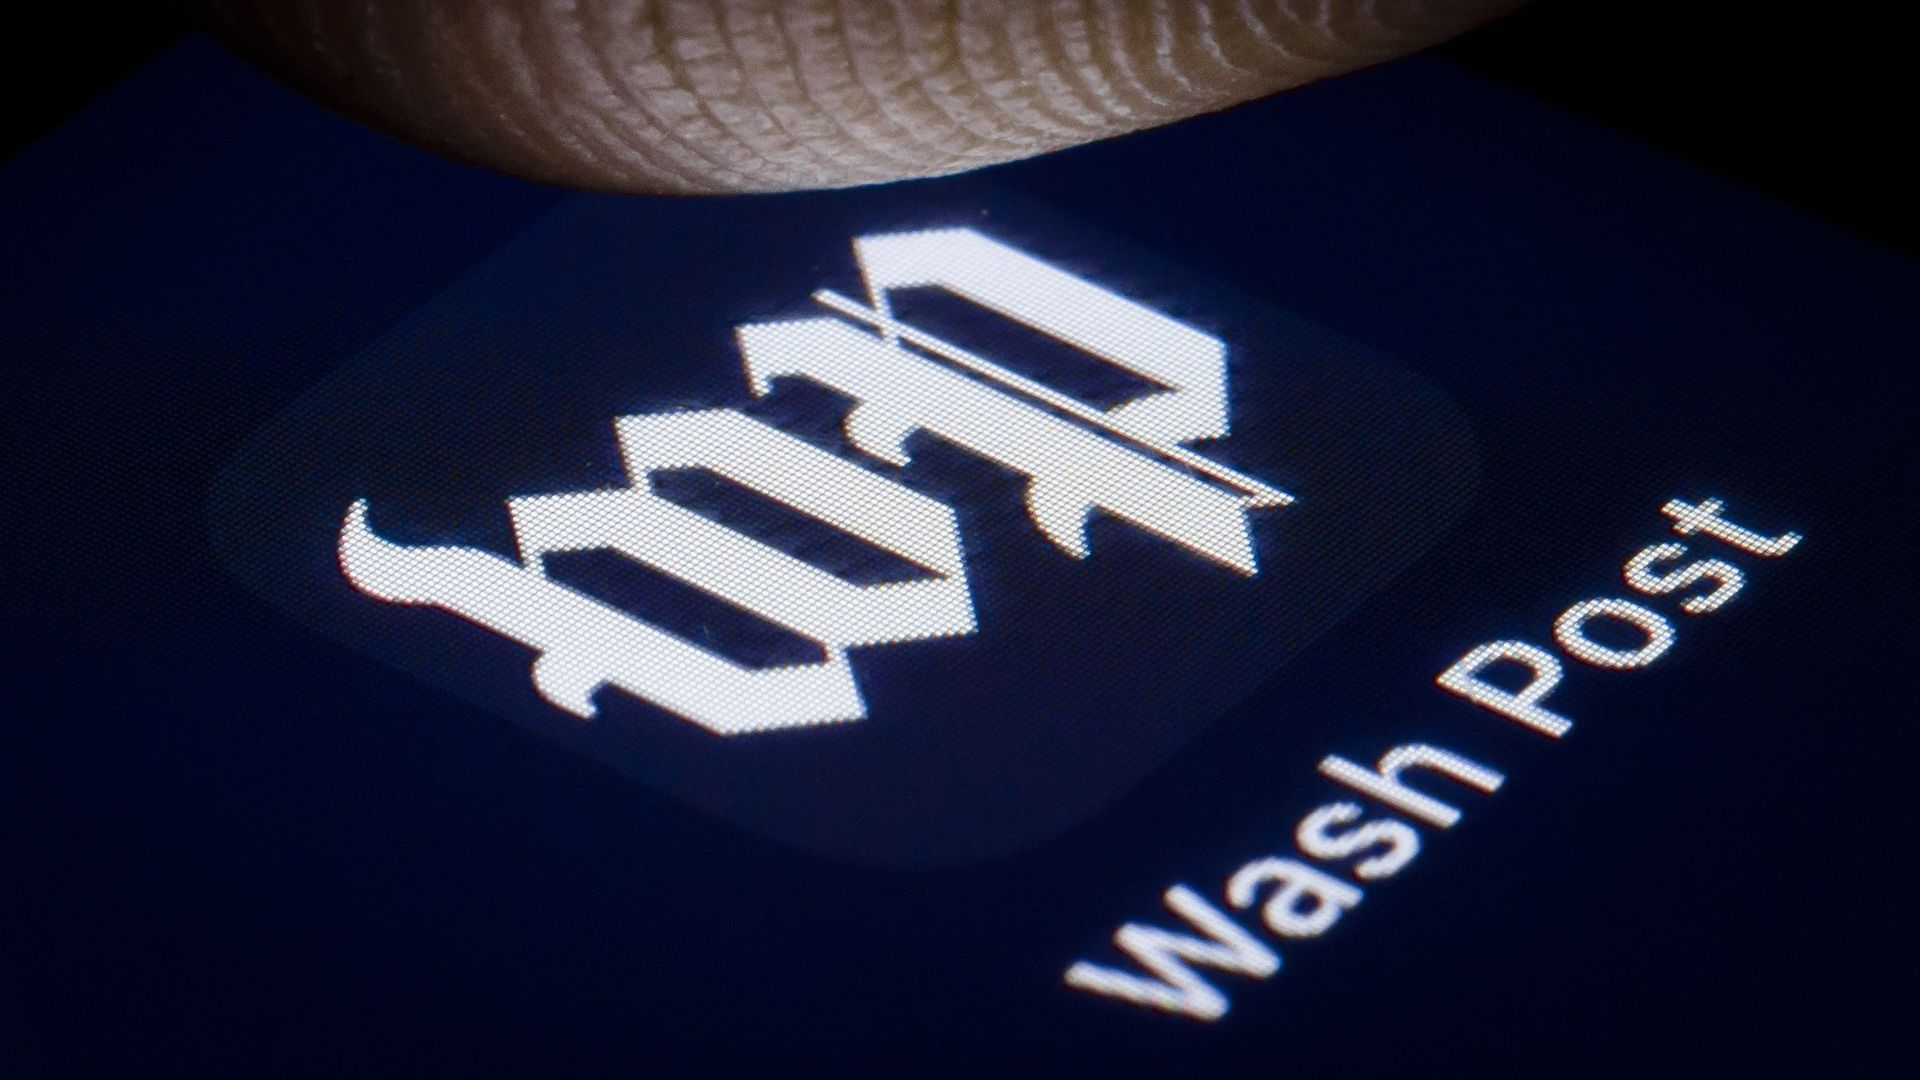 2. WaPo creating new ad network to take on Big Tech